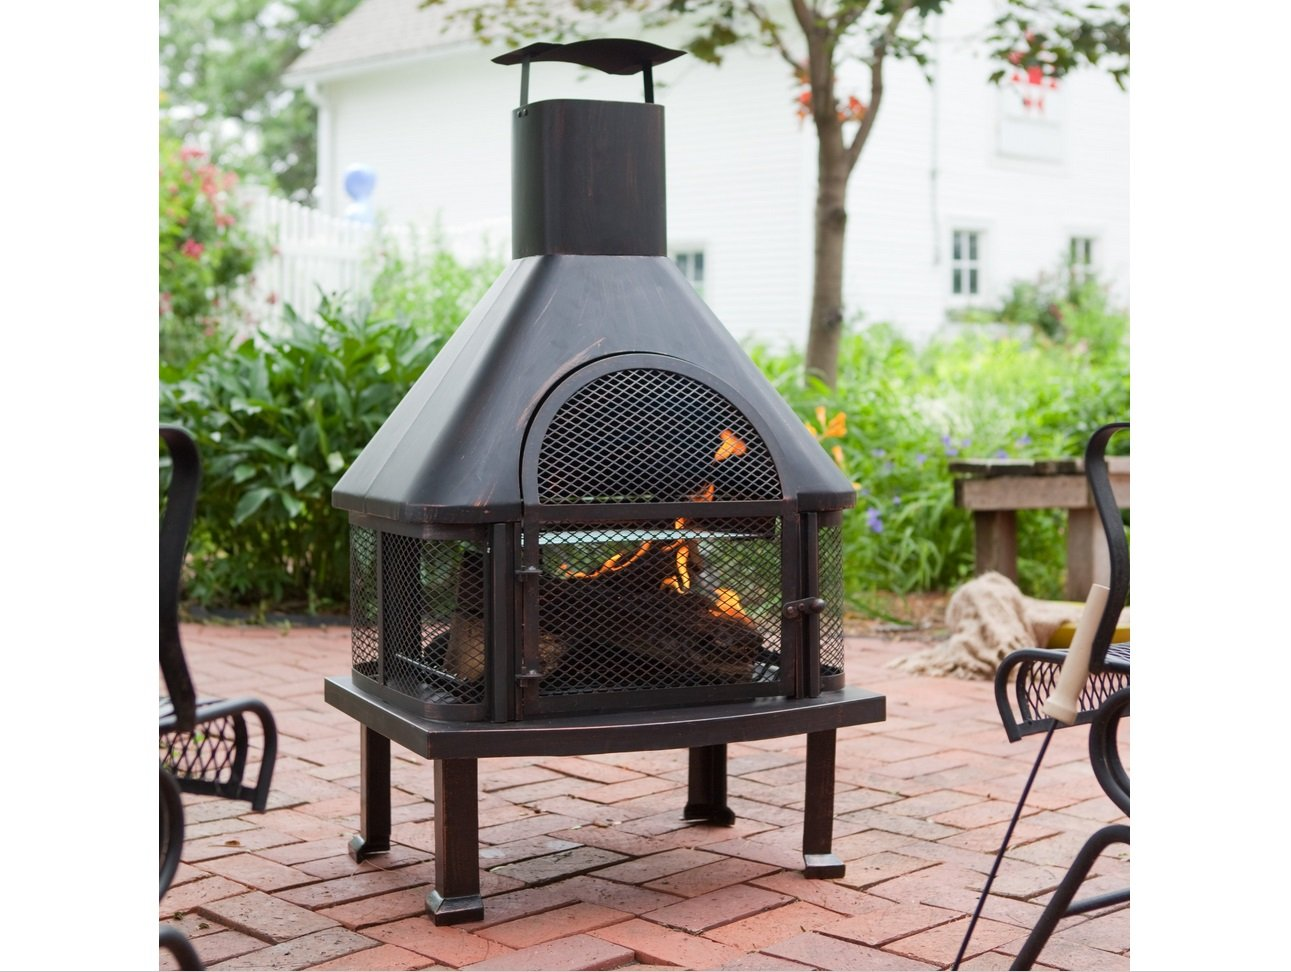 Outdoor Fireplace - Wood Burning Outdoor Fireplace with Smokestack; Gather  Around the Fire in Your